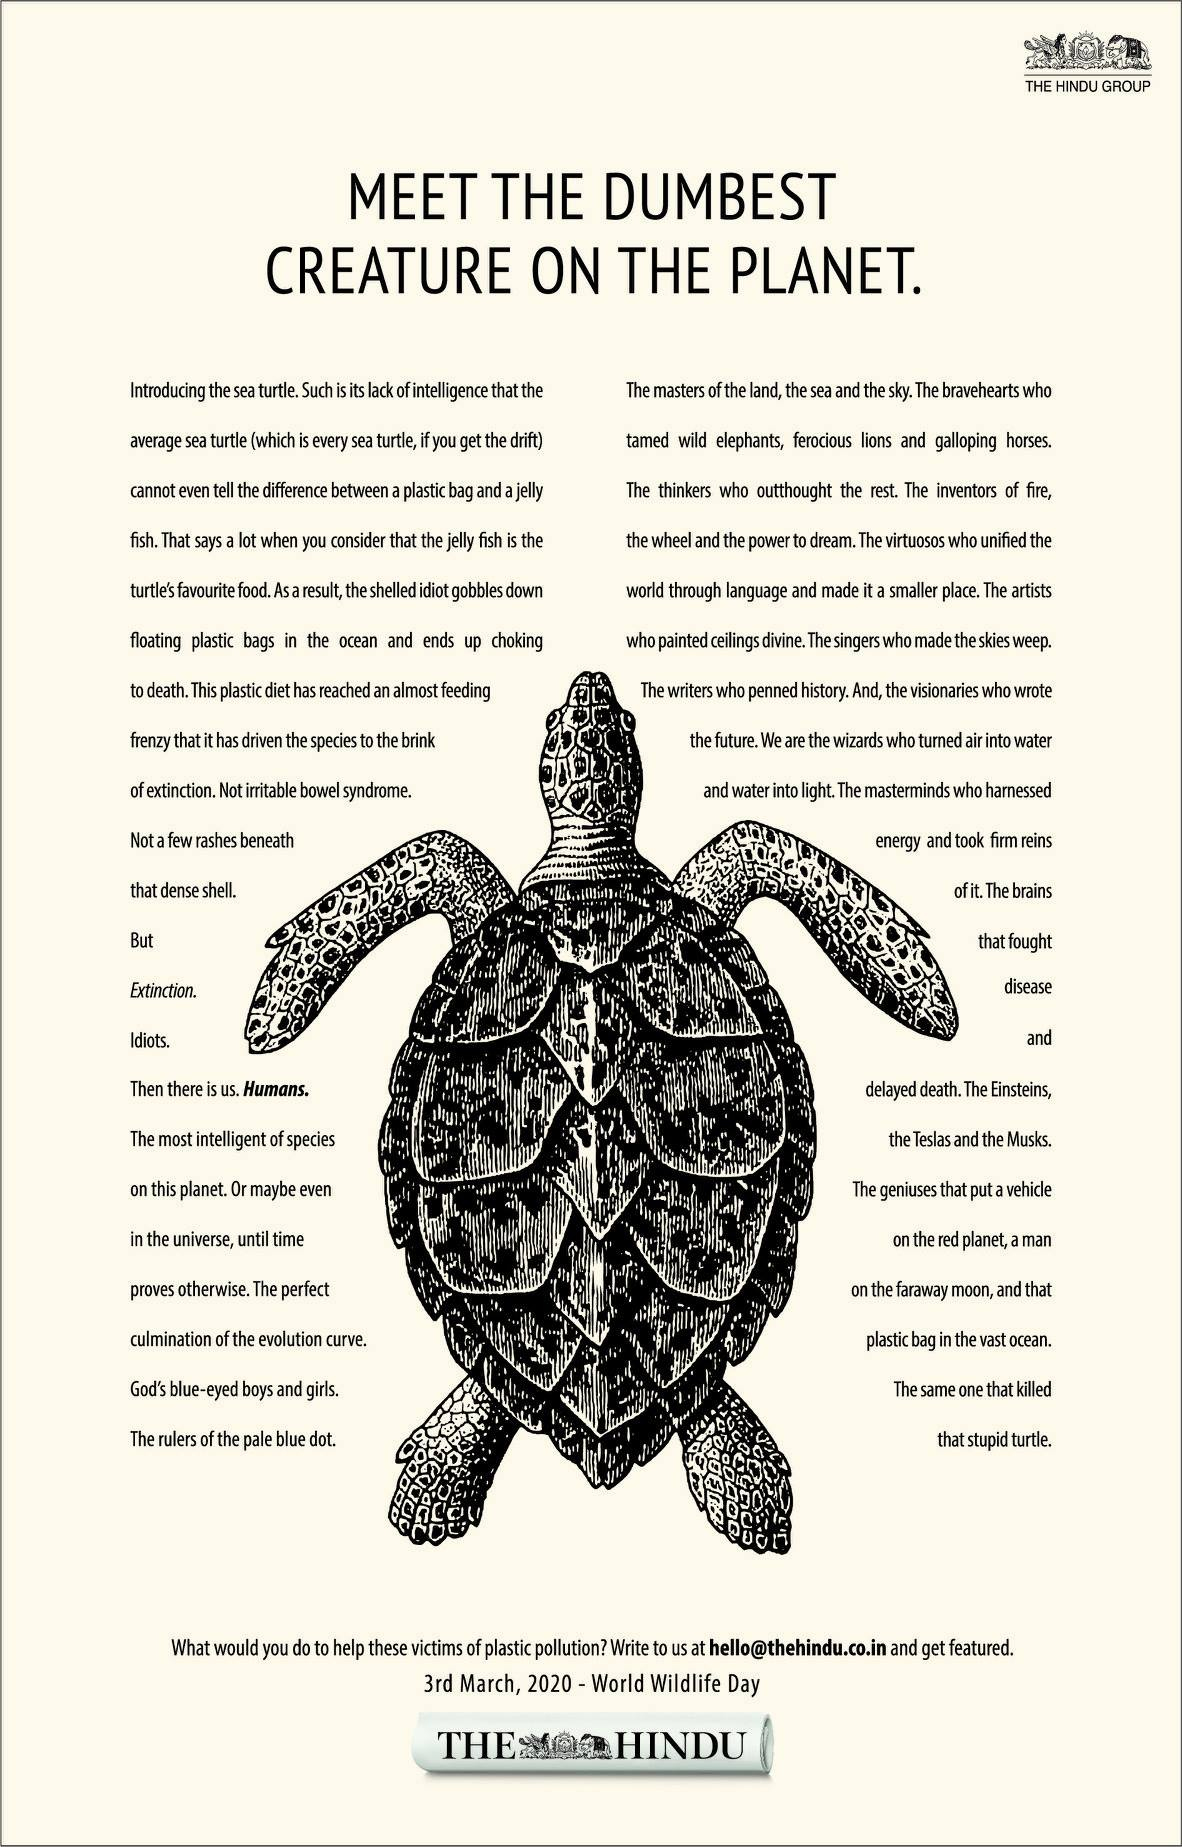 Seen+Noted: Ogilvy India introduces us to the dumbest creature on the planet